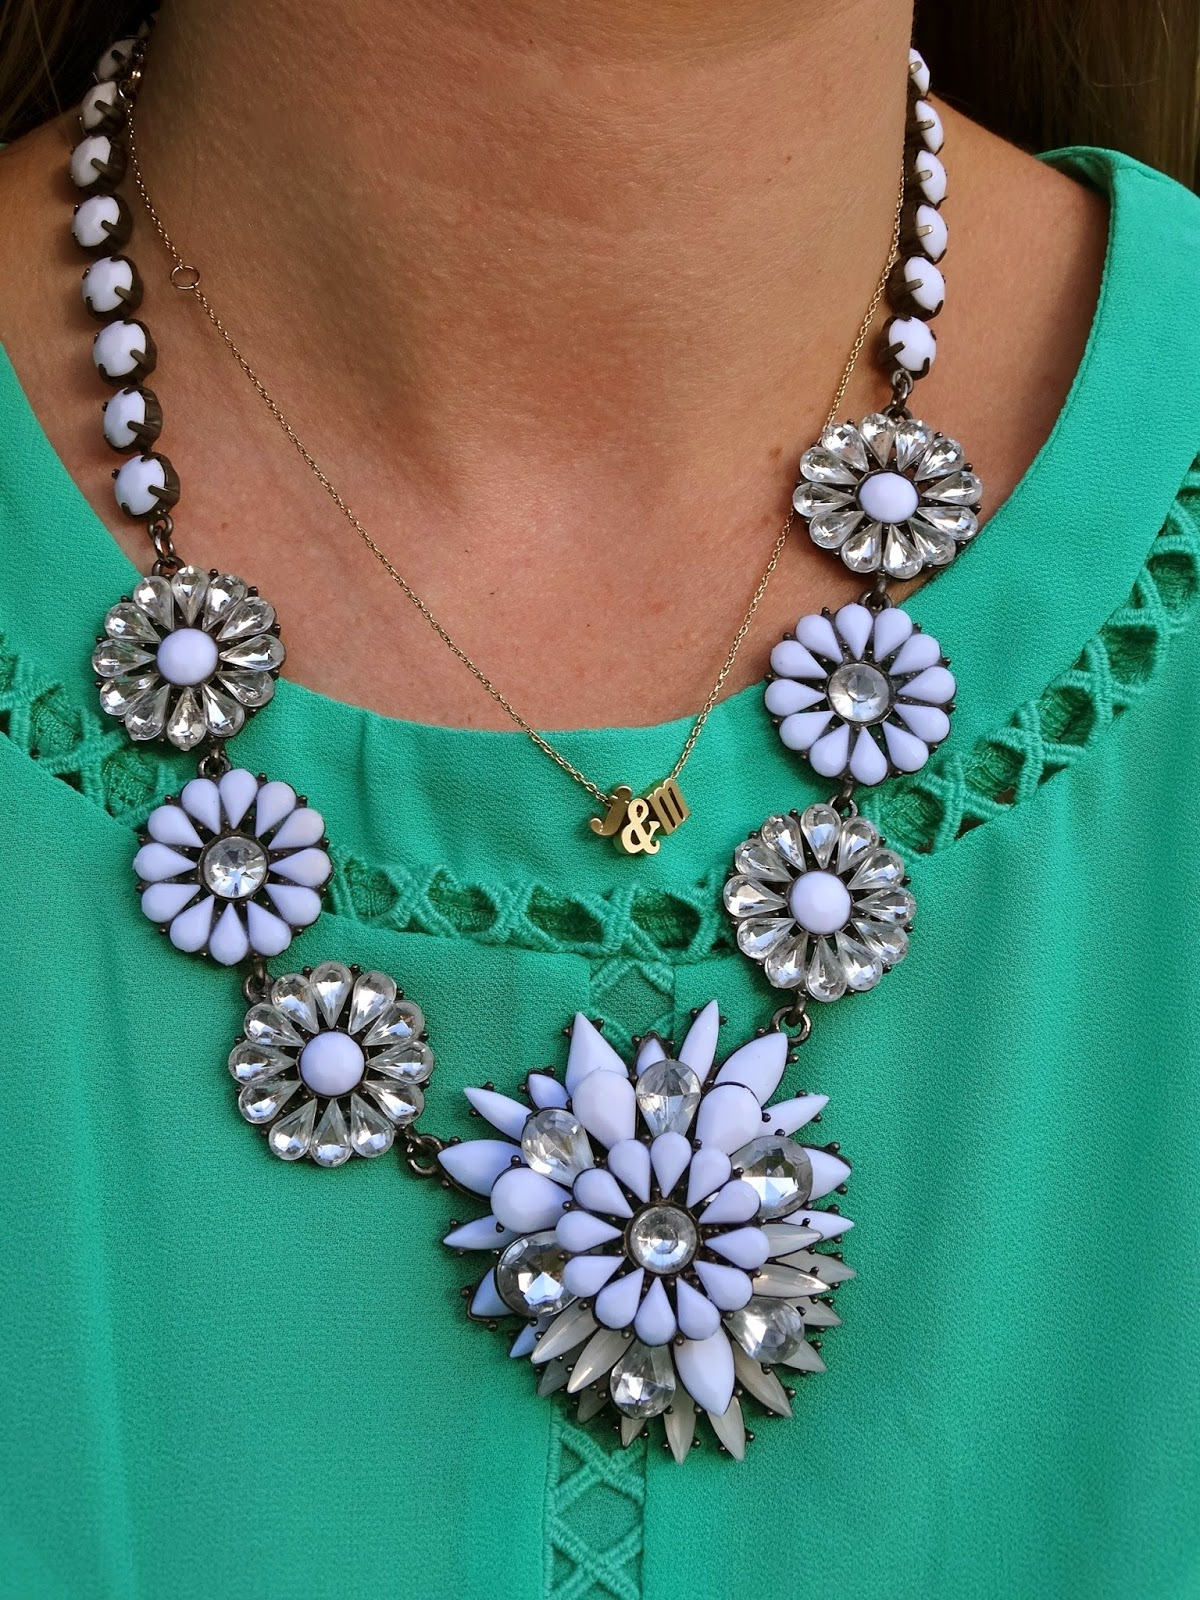 Shop Prima Donna Necklace, worn by Jen Jeffery of House Of Jeffers | www.houseofjeffers.com